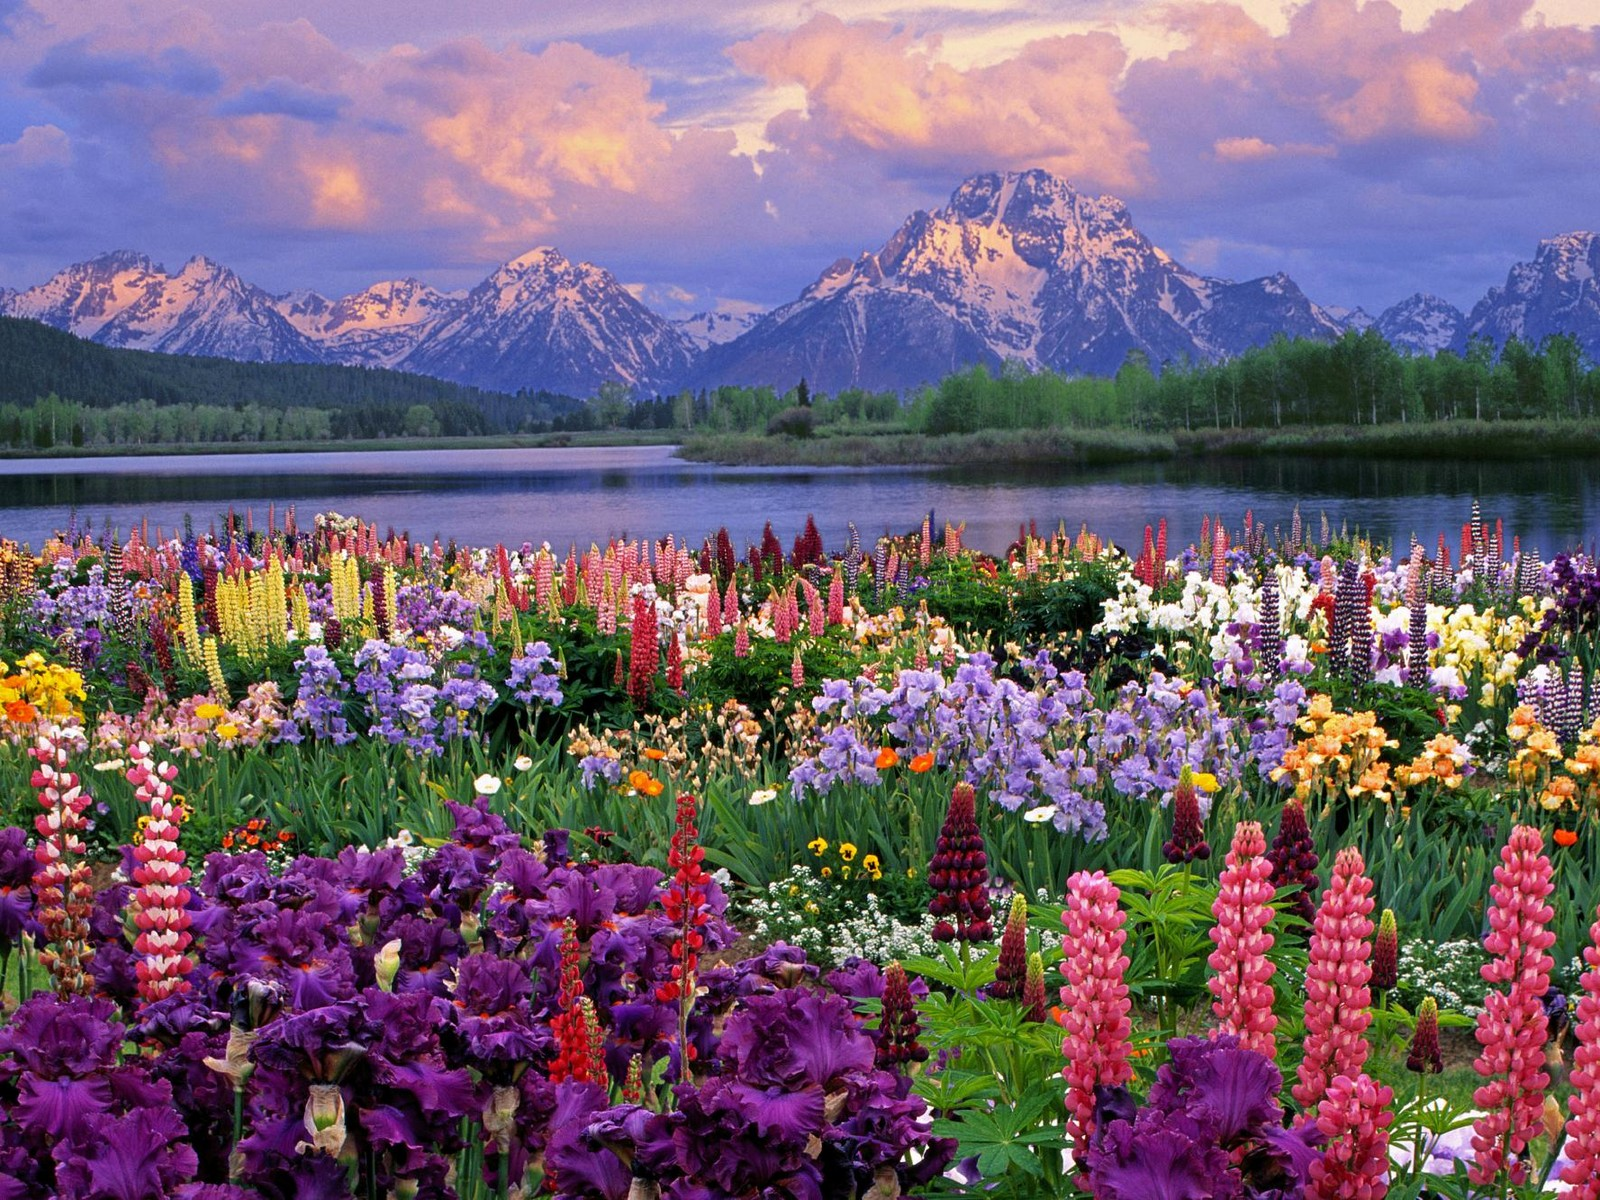 Teton and Wildflowers Wyoming   Flowers Photography Desktop Wallpapers 1600x1200